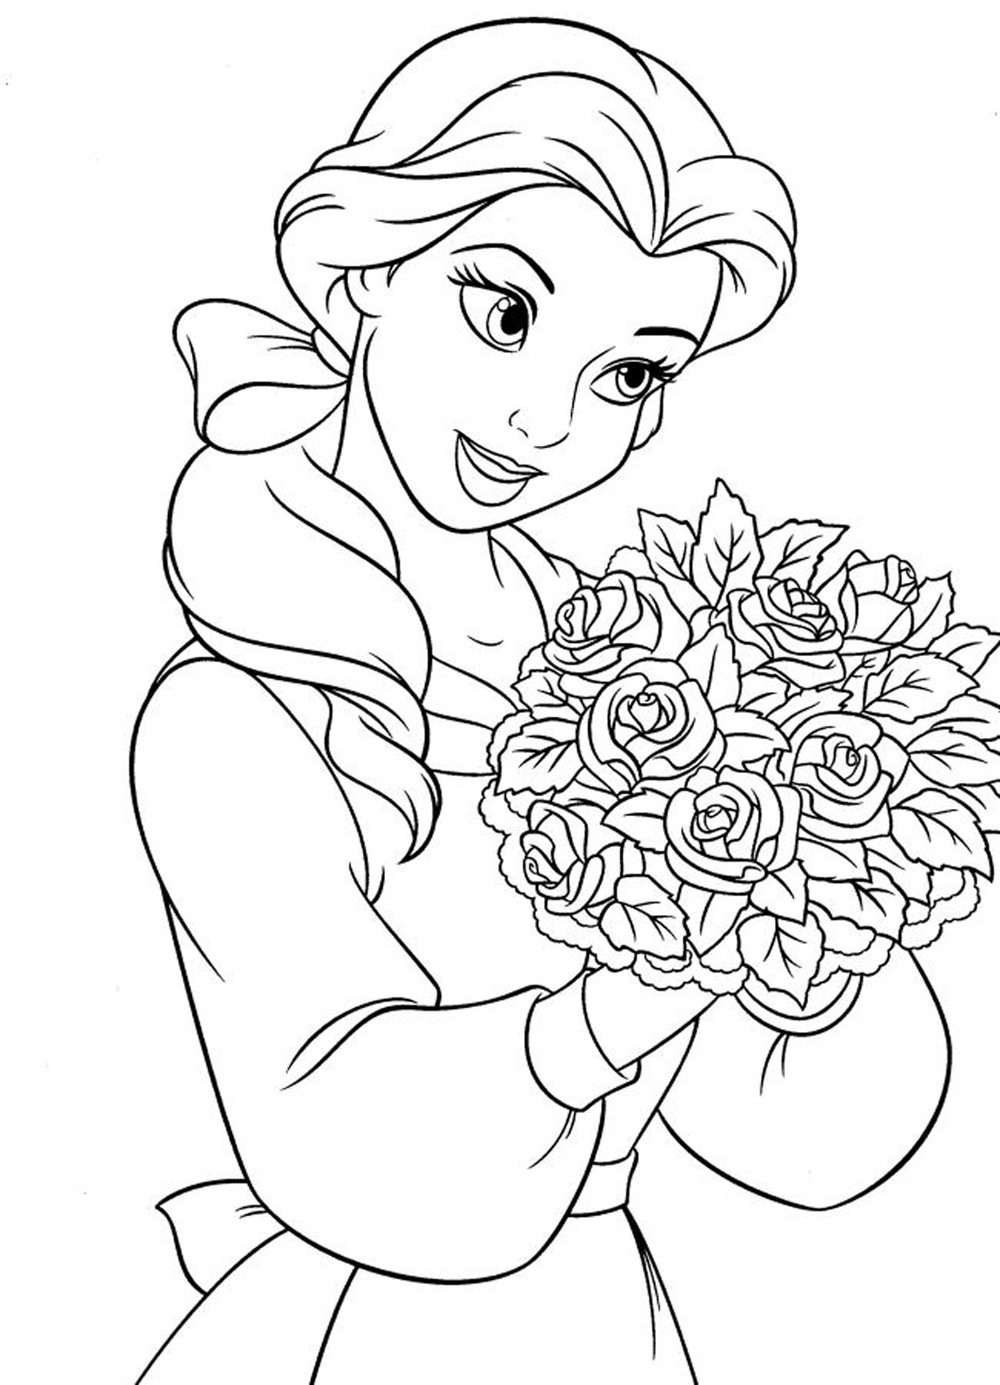 Free Coloring Pages Of Disney Prinzessinnen Free Coloring Pages For Disney Free